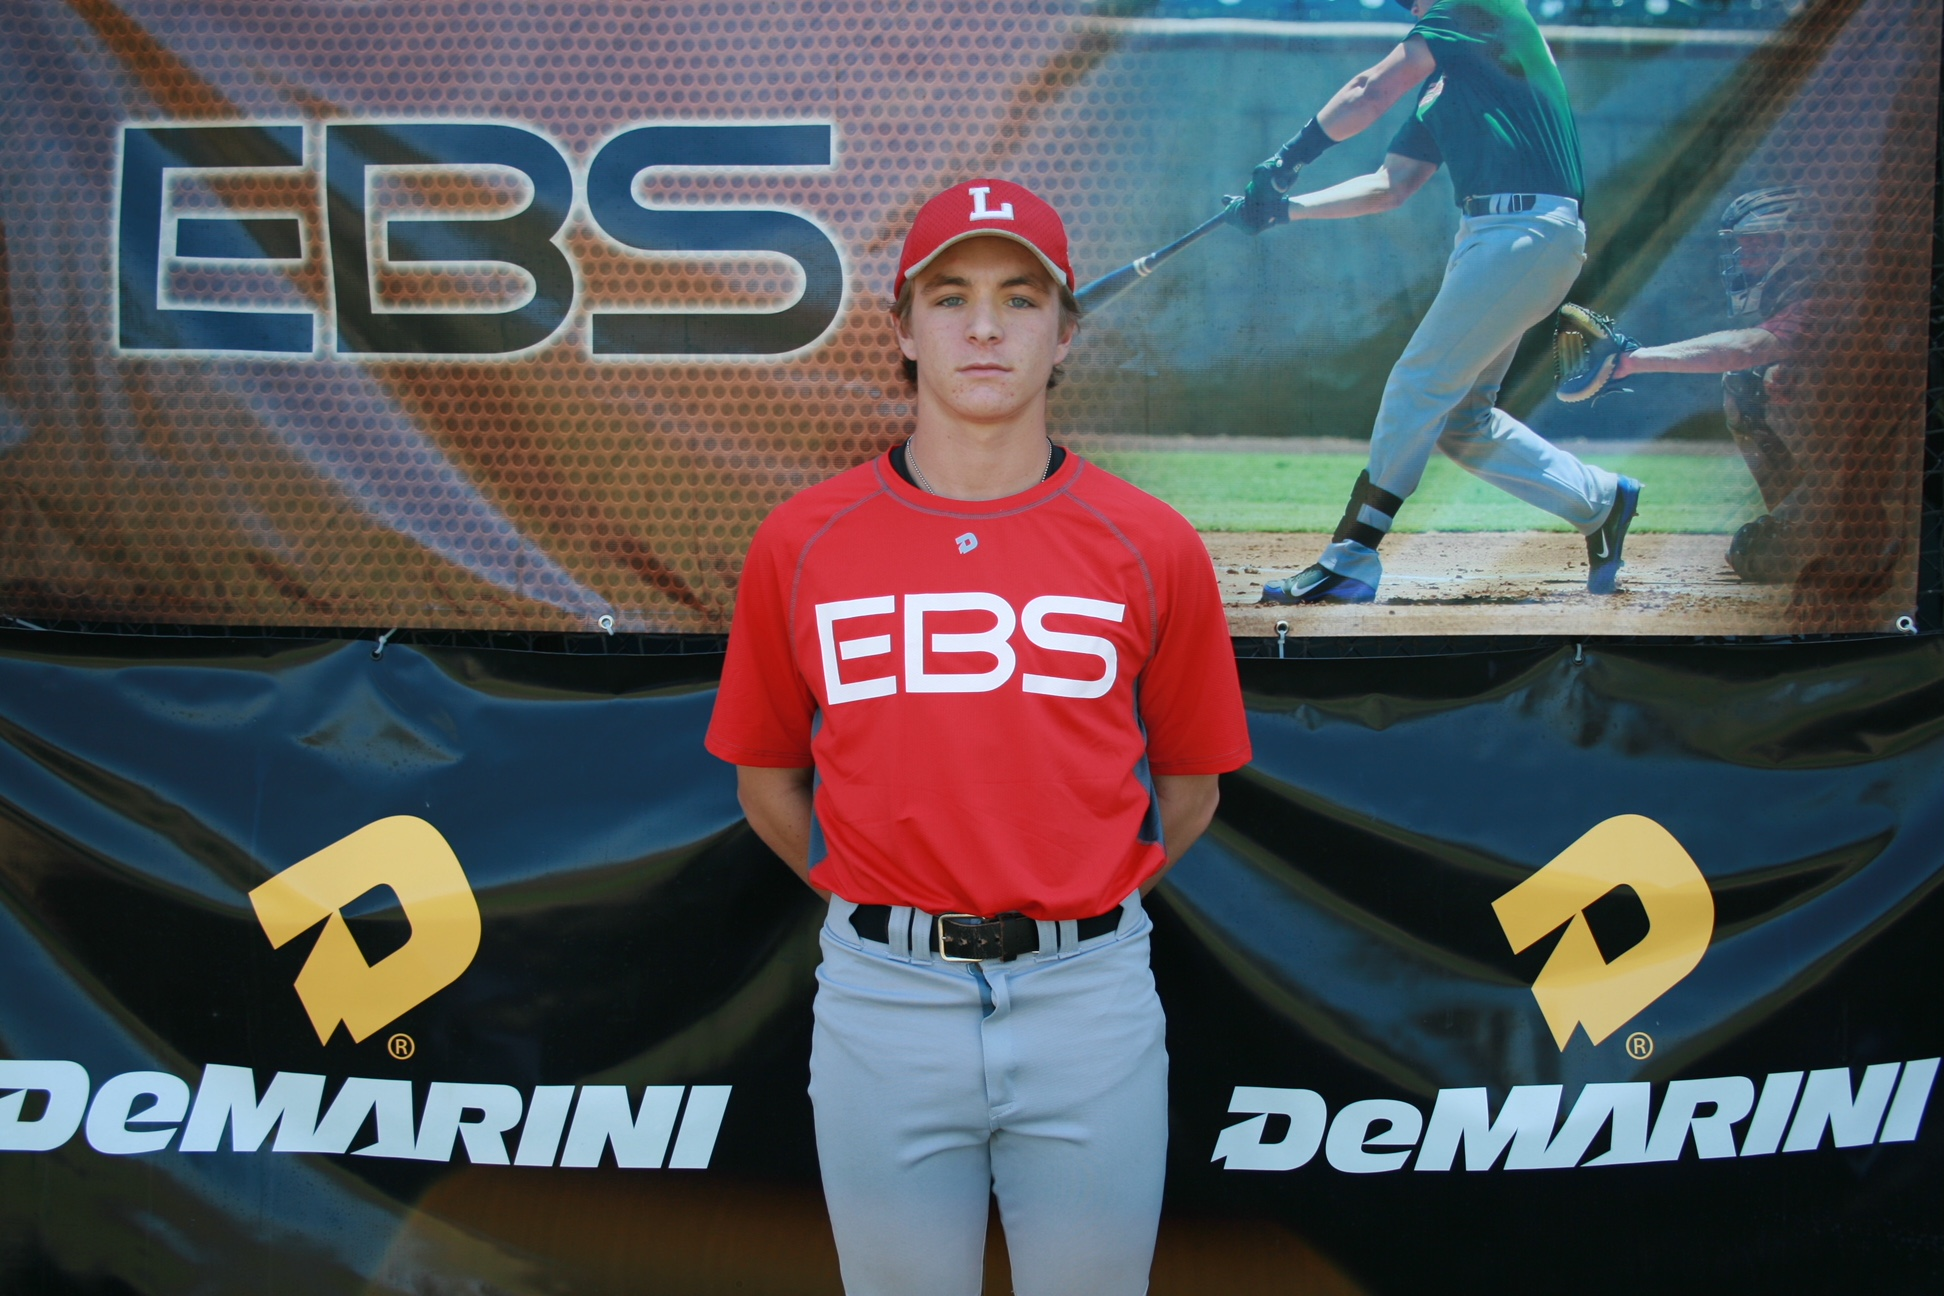 Austin Allen | 2018 | El Modena | So Cal Birds | University of colorado springs